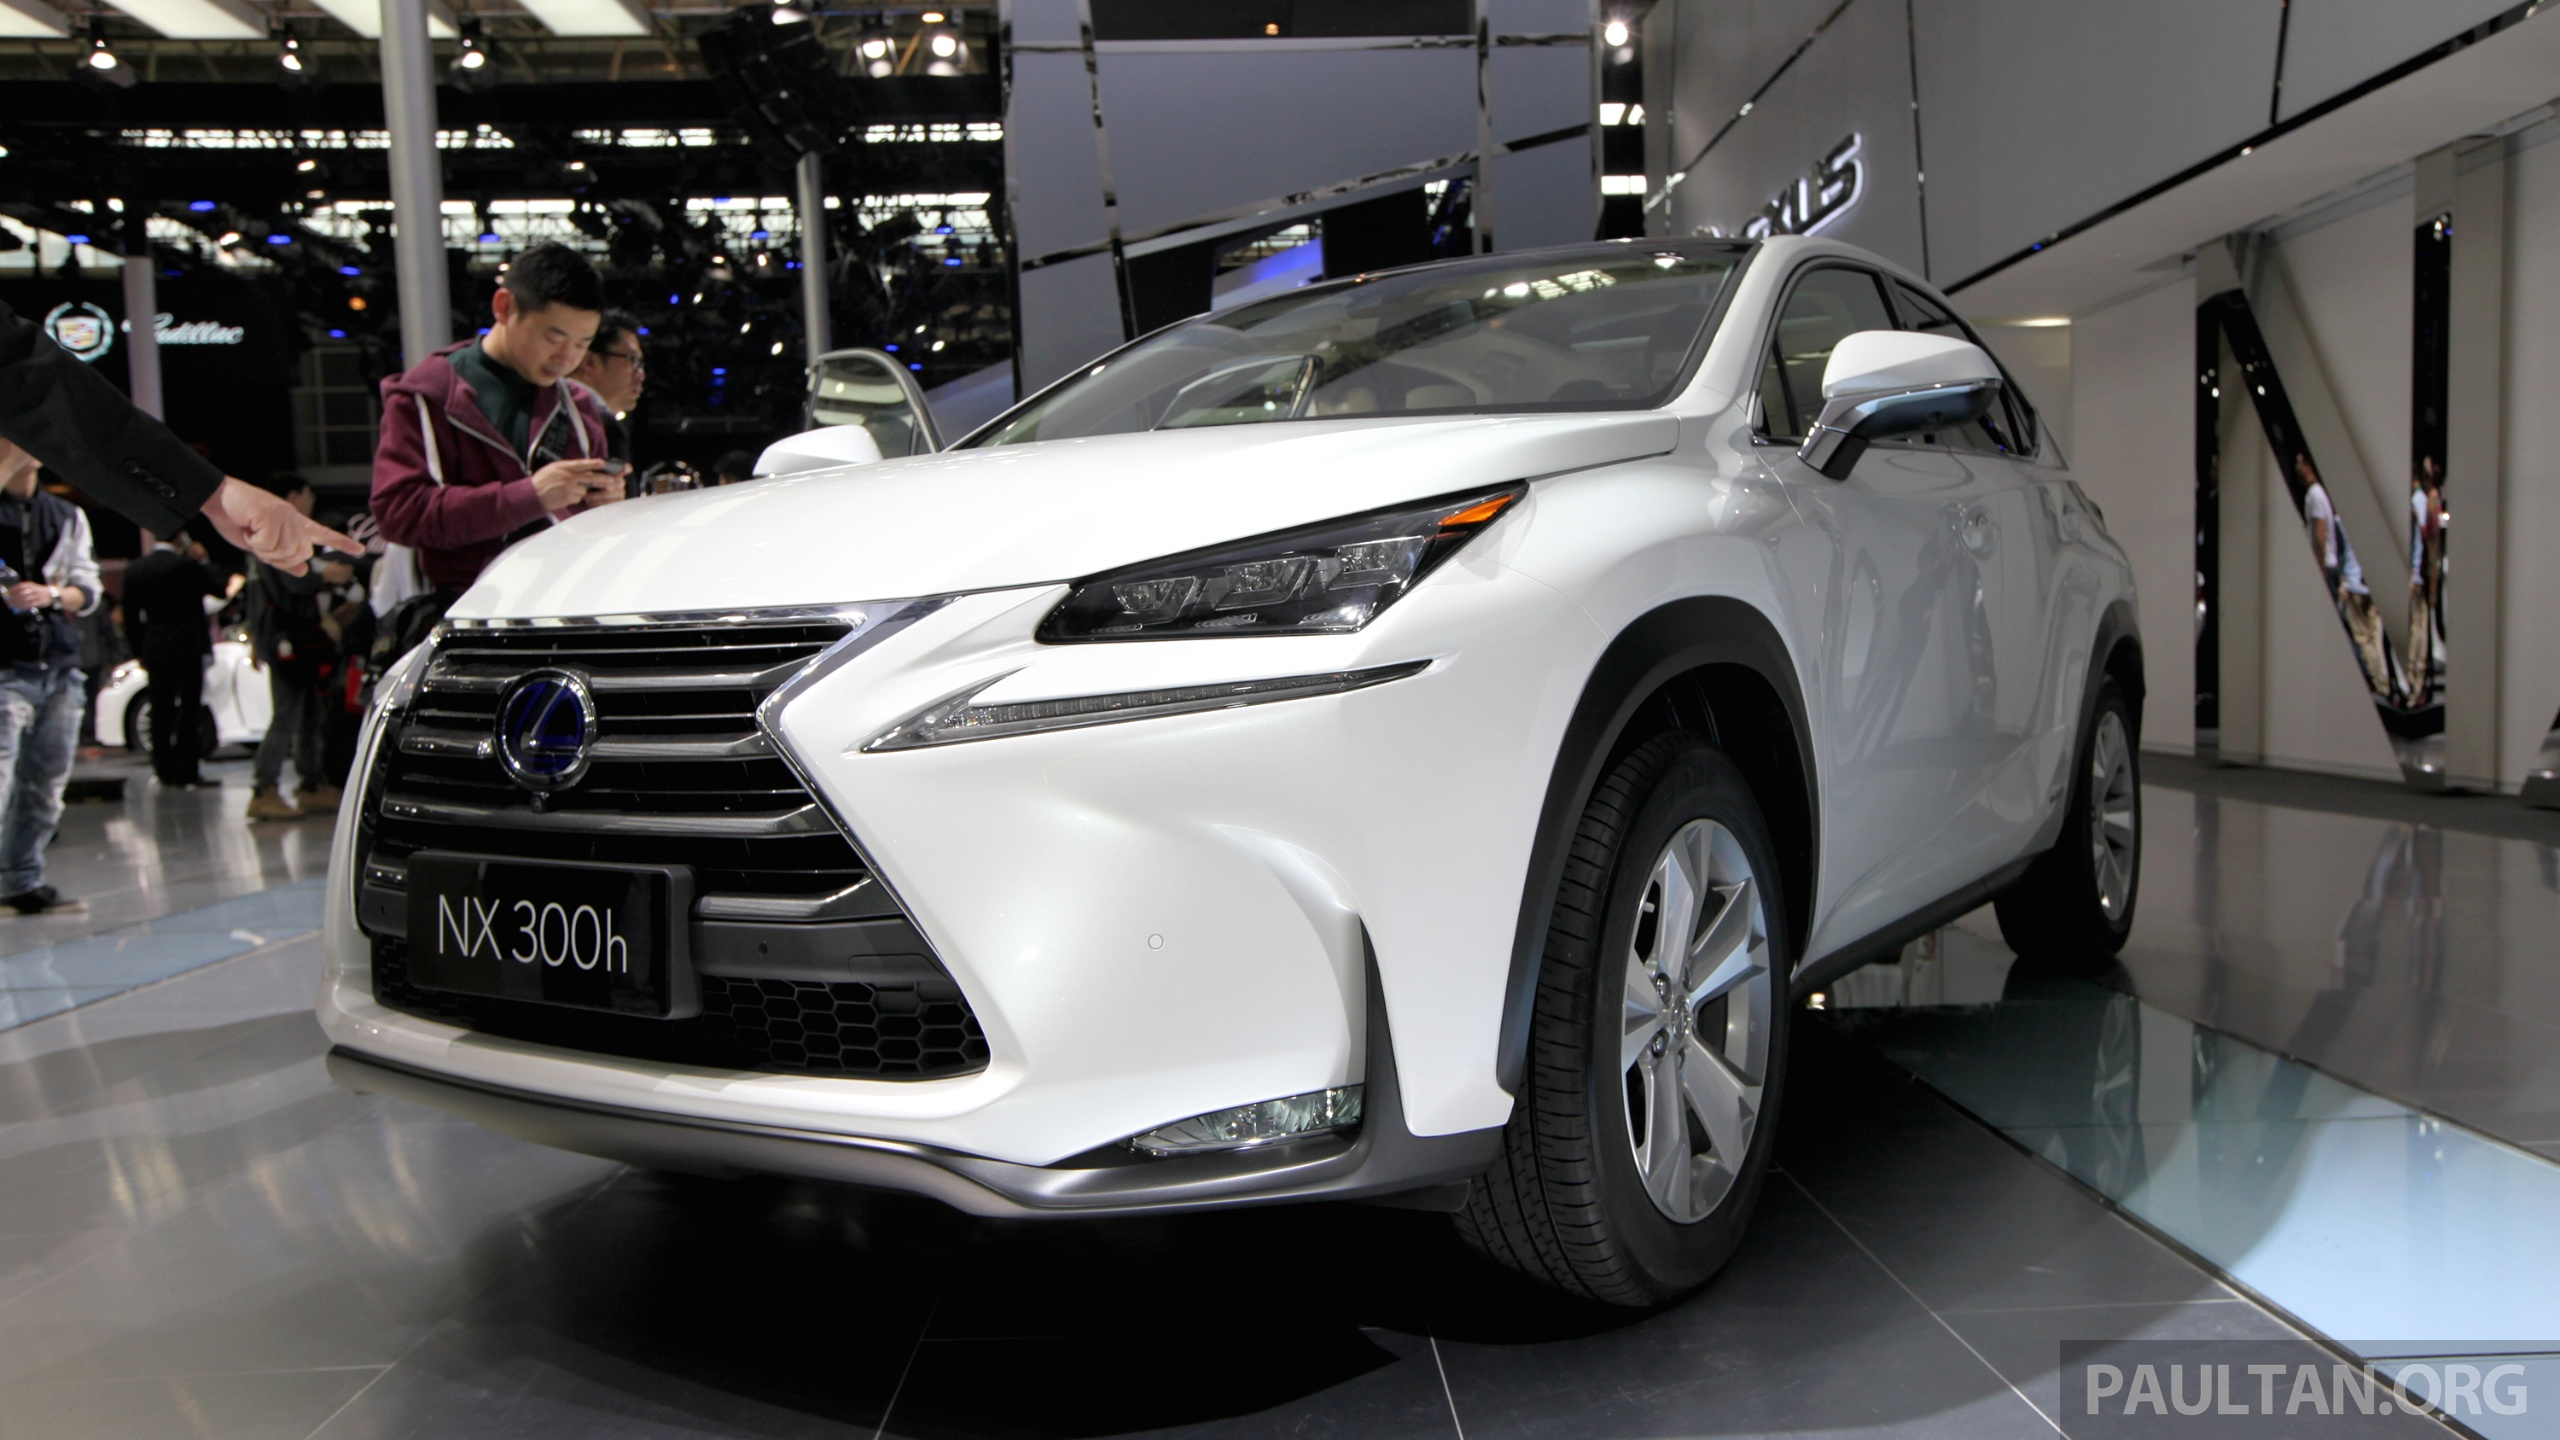 lexus nx suv full details revealed at auto china 2014. Black Bedroom Furniture Sets. Home Design Ideas